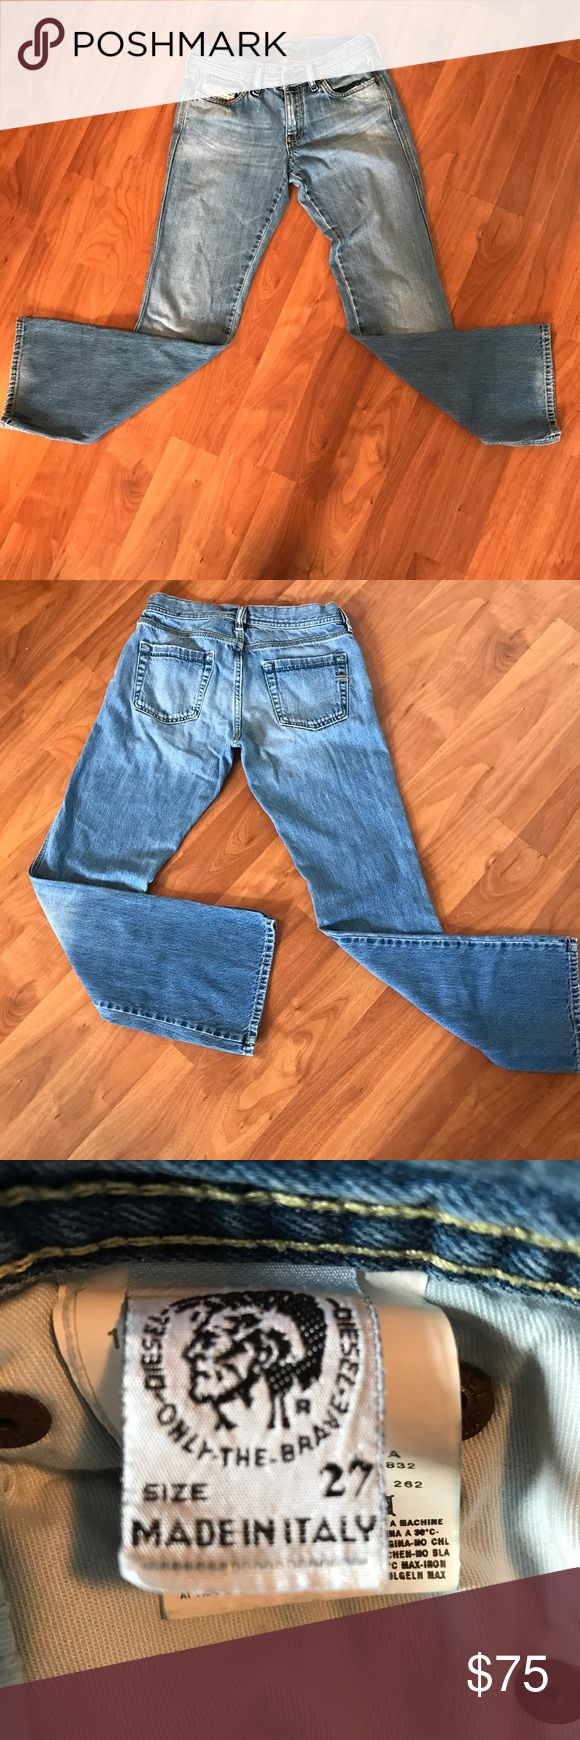 Diesel boot cut jeans. Diesel boot cut jeans. Excellent condition, previously worn. Comfortable. Comes from smoke free home.                                         🎉‼️Get a free item with purchase. Check out my Free item listings and let me know what you'd like to pair this with and I'll create a new listing for you with your free item! Happy Poshing! ❤️👠🙏🏻☮️ Diesel Jeans Boot Cut